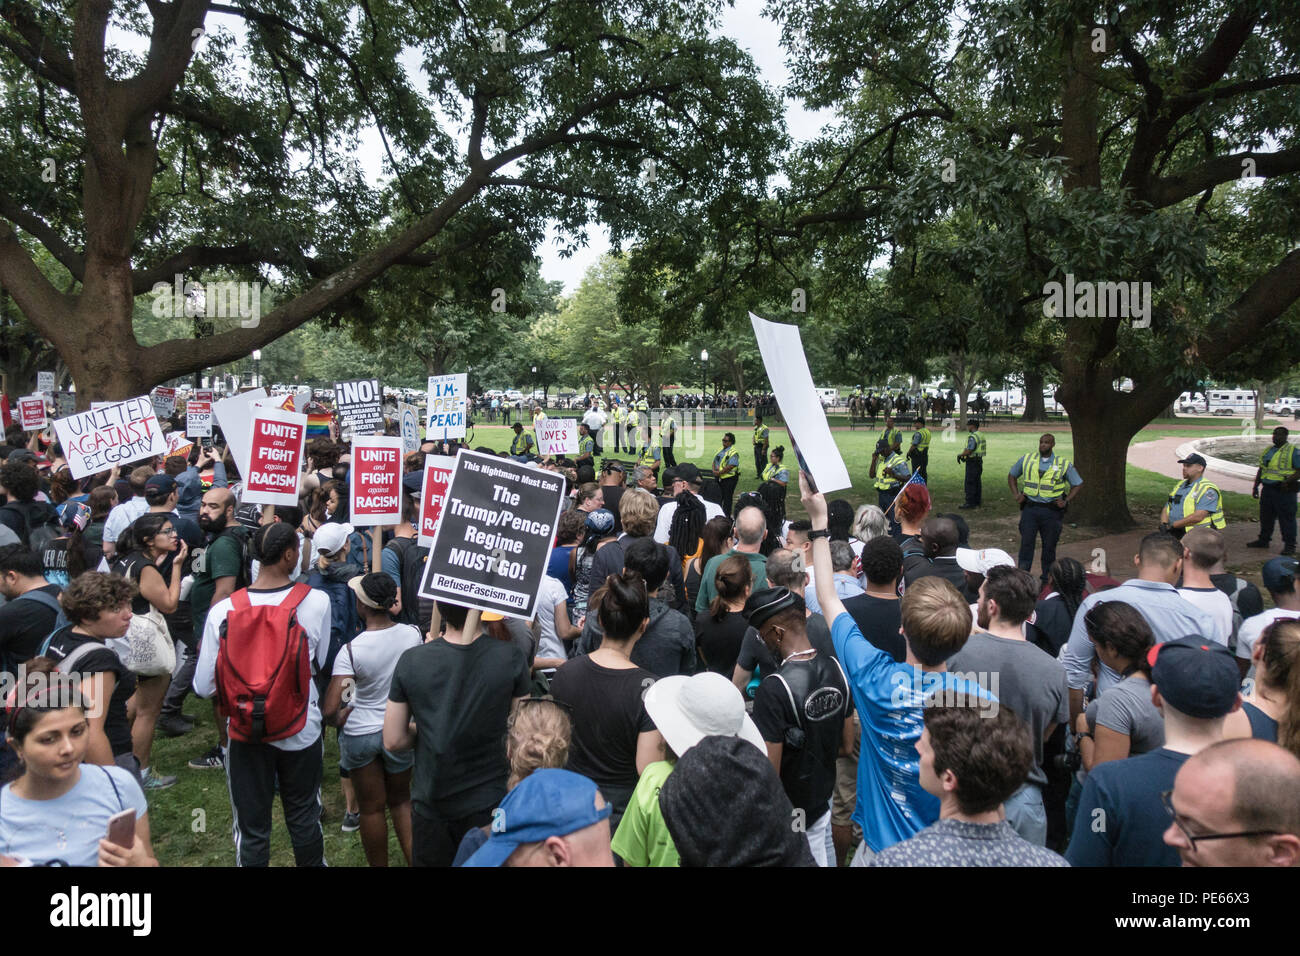 Washington, DC, USA. 12th August, 2018.   Some of the thousands of demonstrators at a counter-protest in Lafayette Square, while only a handful of white nationalists held their Unite the Right rally nearby in front of the White House (seen in distance center of photo among camera crews) on the one year anniversary of the violent Charlottesville, Virginia rally. Bob Korn/Alamy Live News Stock Photo